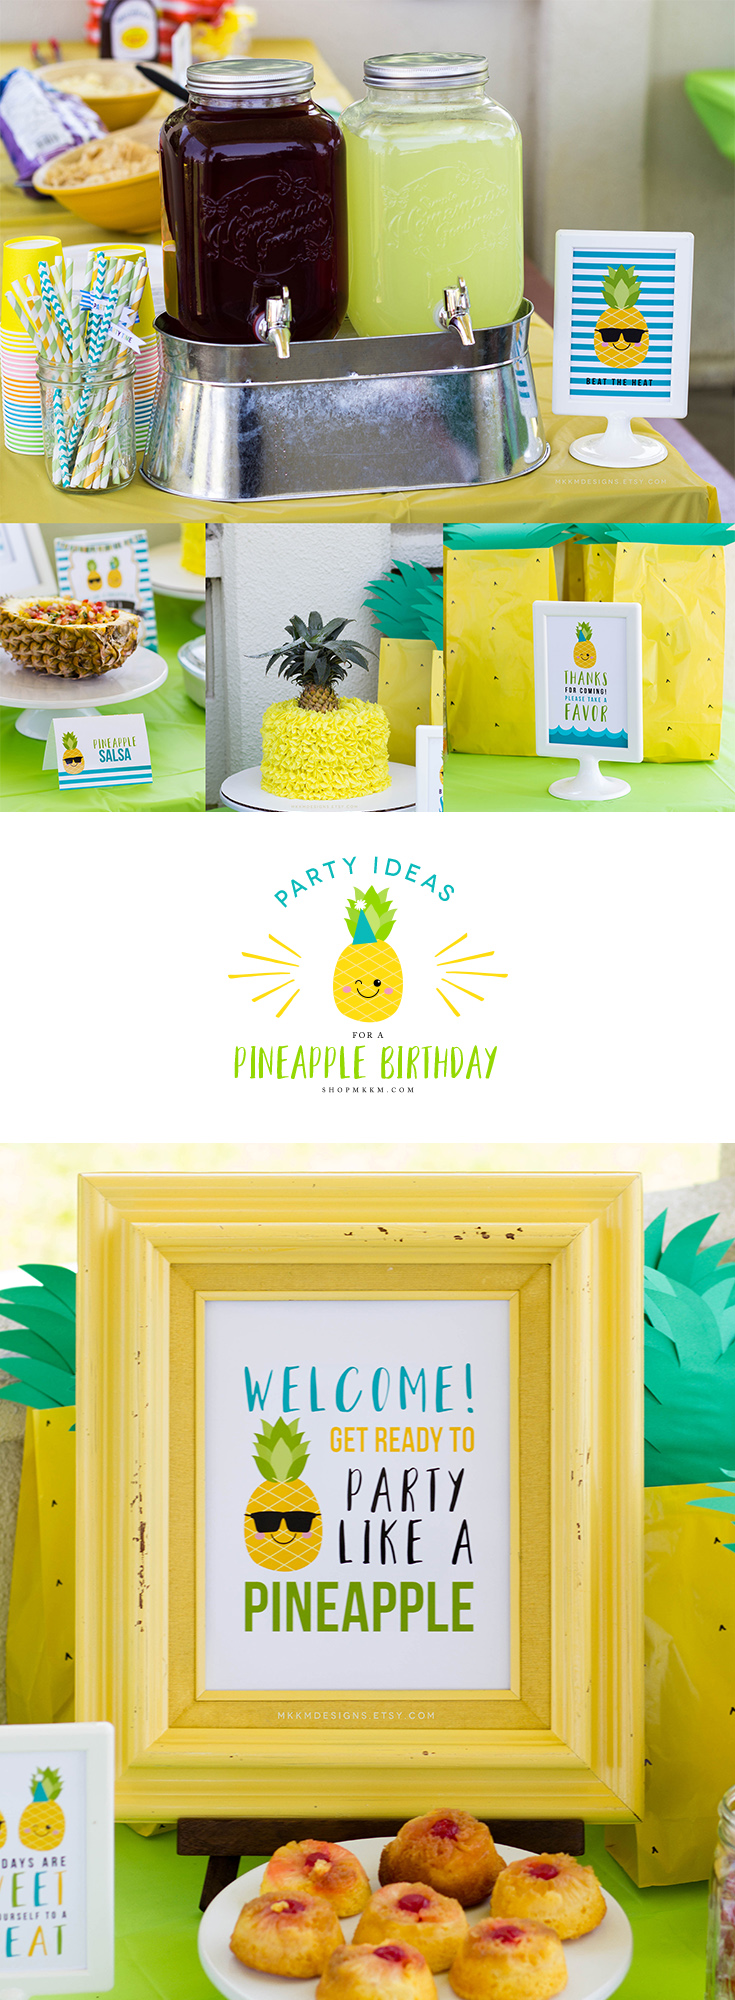 Pineapple party ideas and free printable favor sign from shopmkkm.com